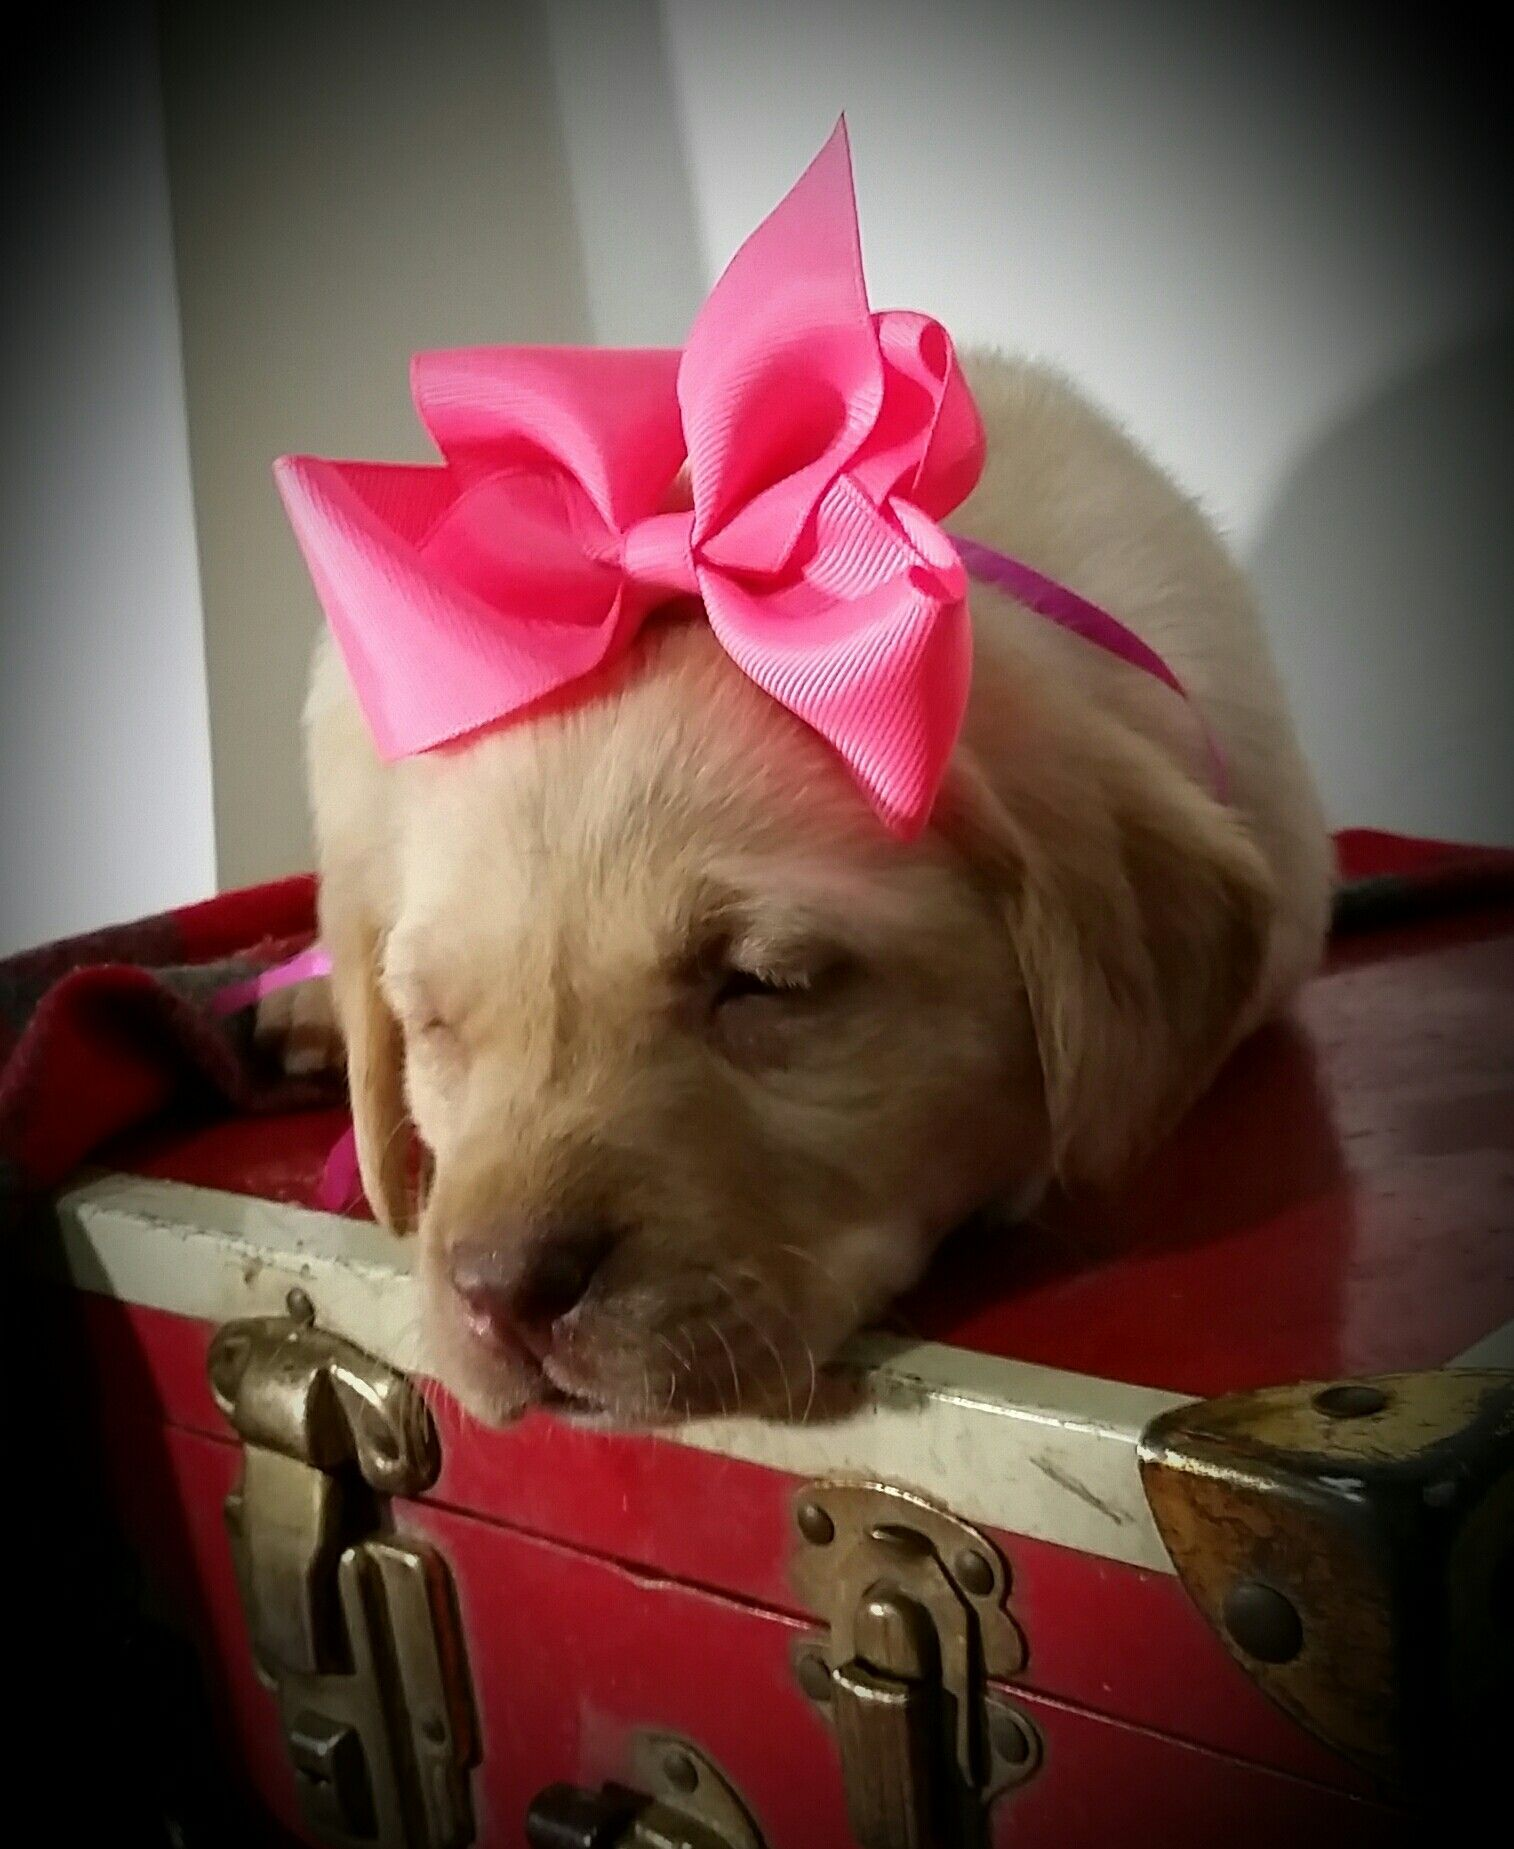 Pin by Sloane on Yellow lab puppies